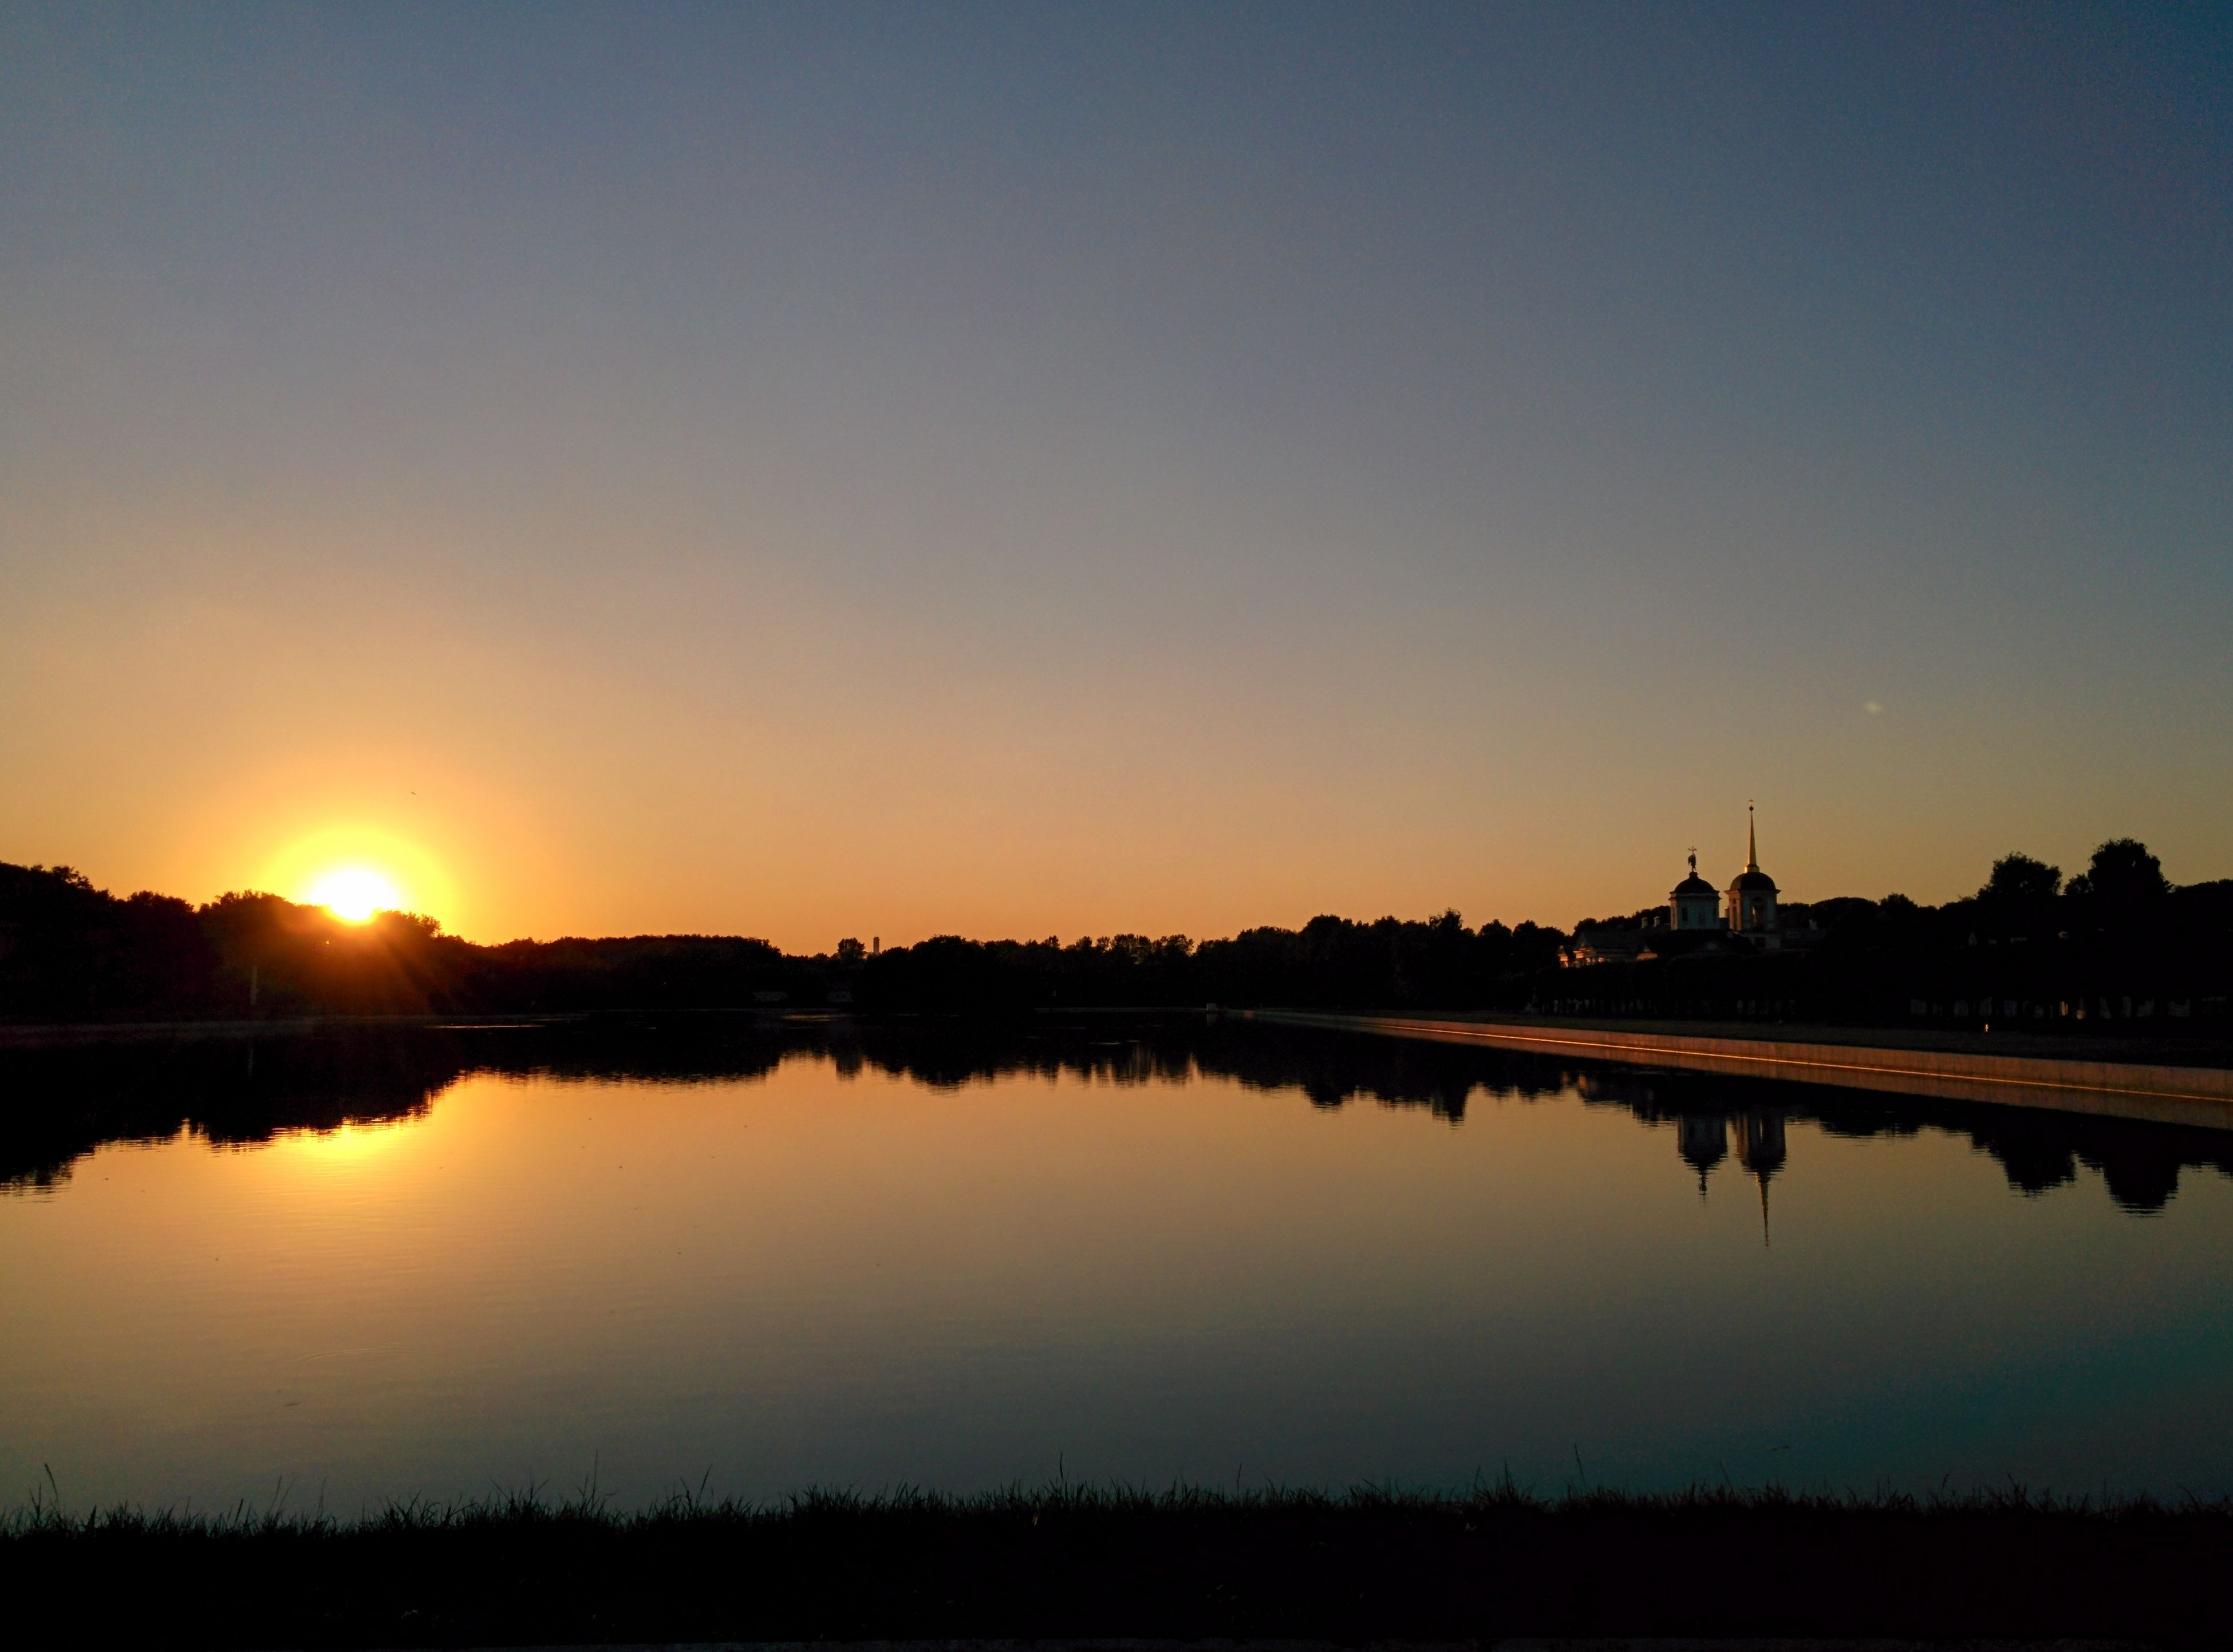 sunset, reflection, water, clear sky, silhouette, copy space, tranquil scene, lake, tranquility, scenics, sun, beauty in nature, standing water, nature, idyllic, river, orange color, calm, sunlight, landscape